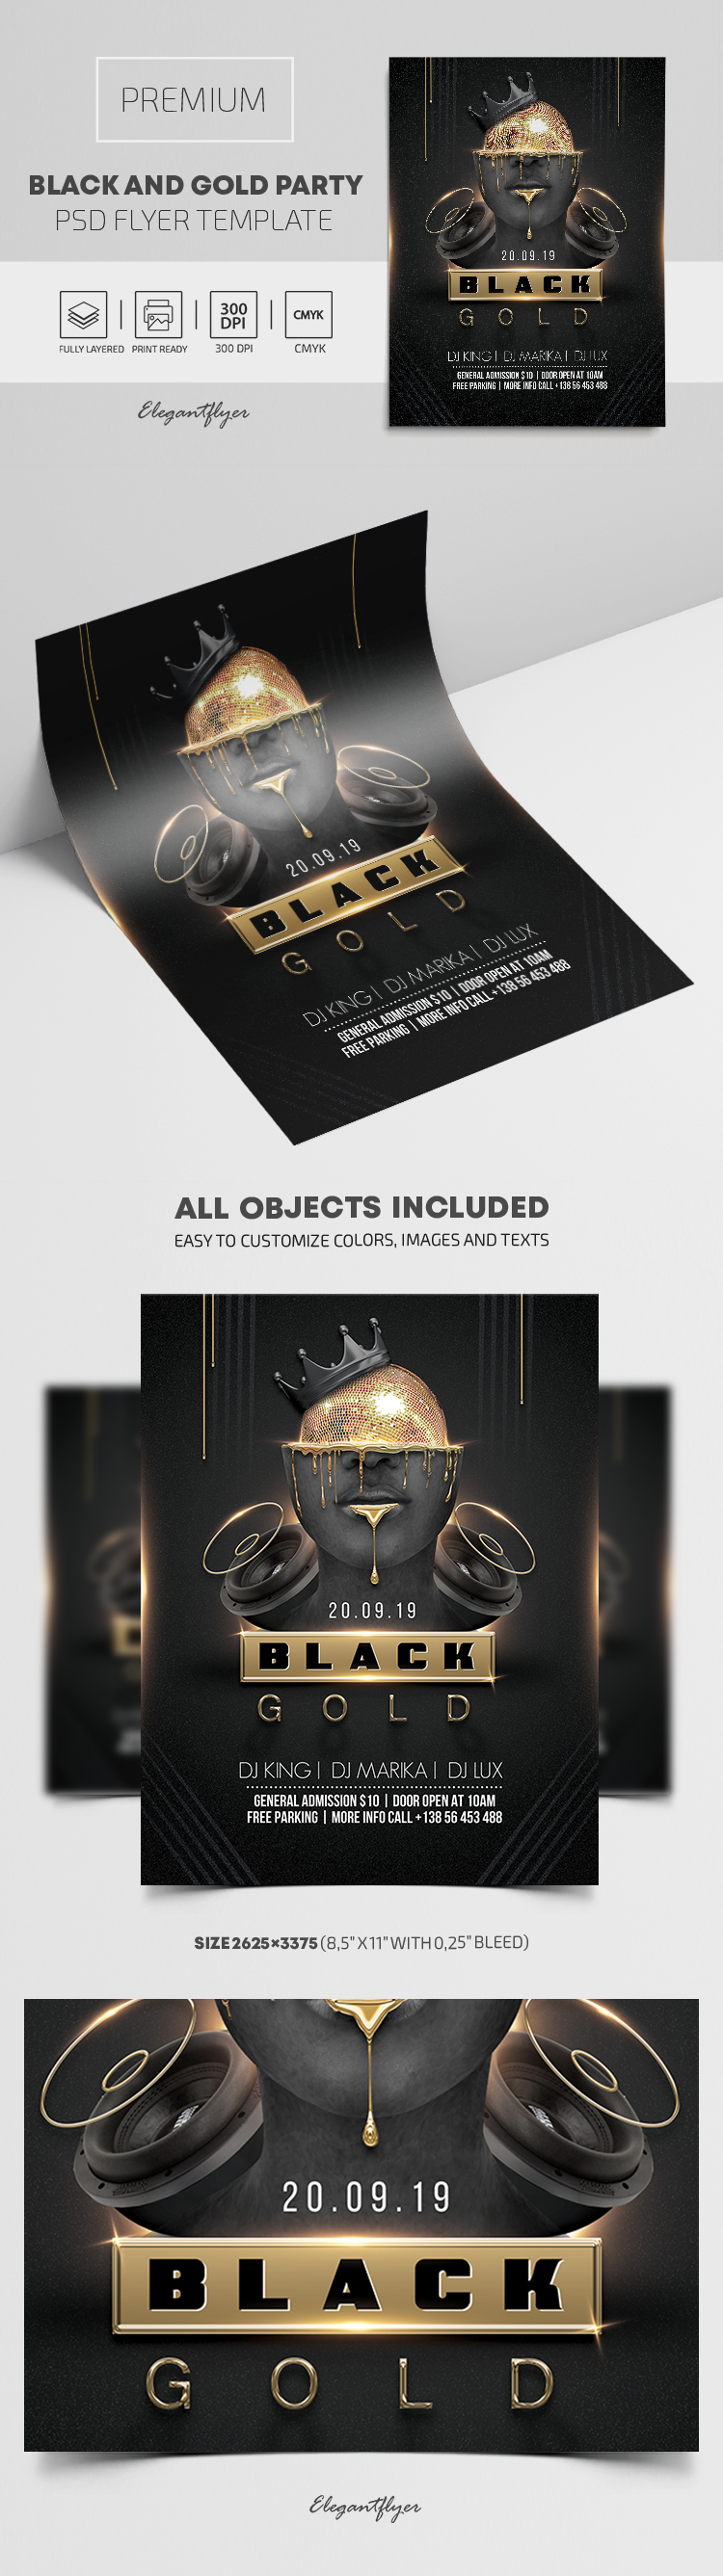 Black and Gold Party – Premium PSD Flyer Template